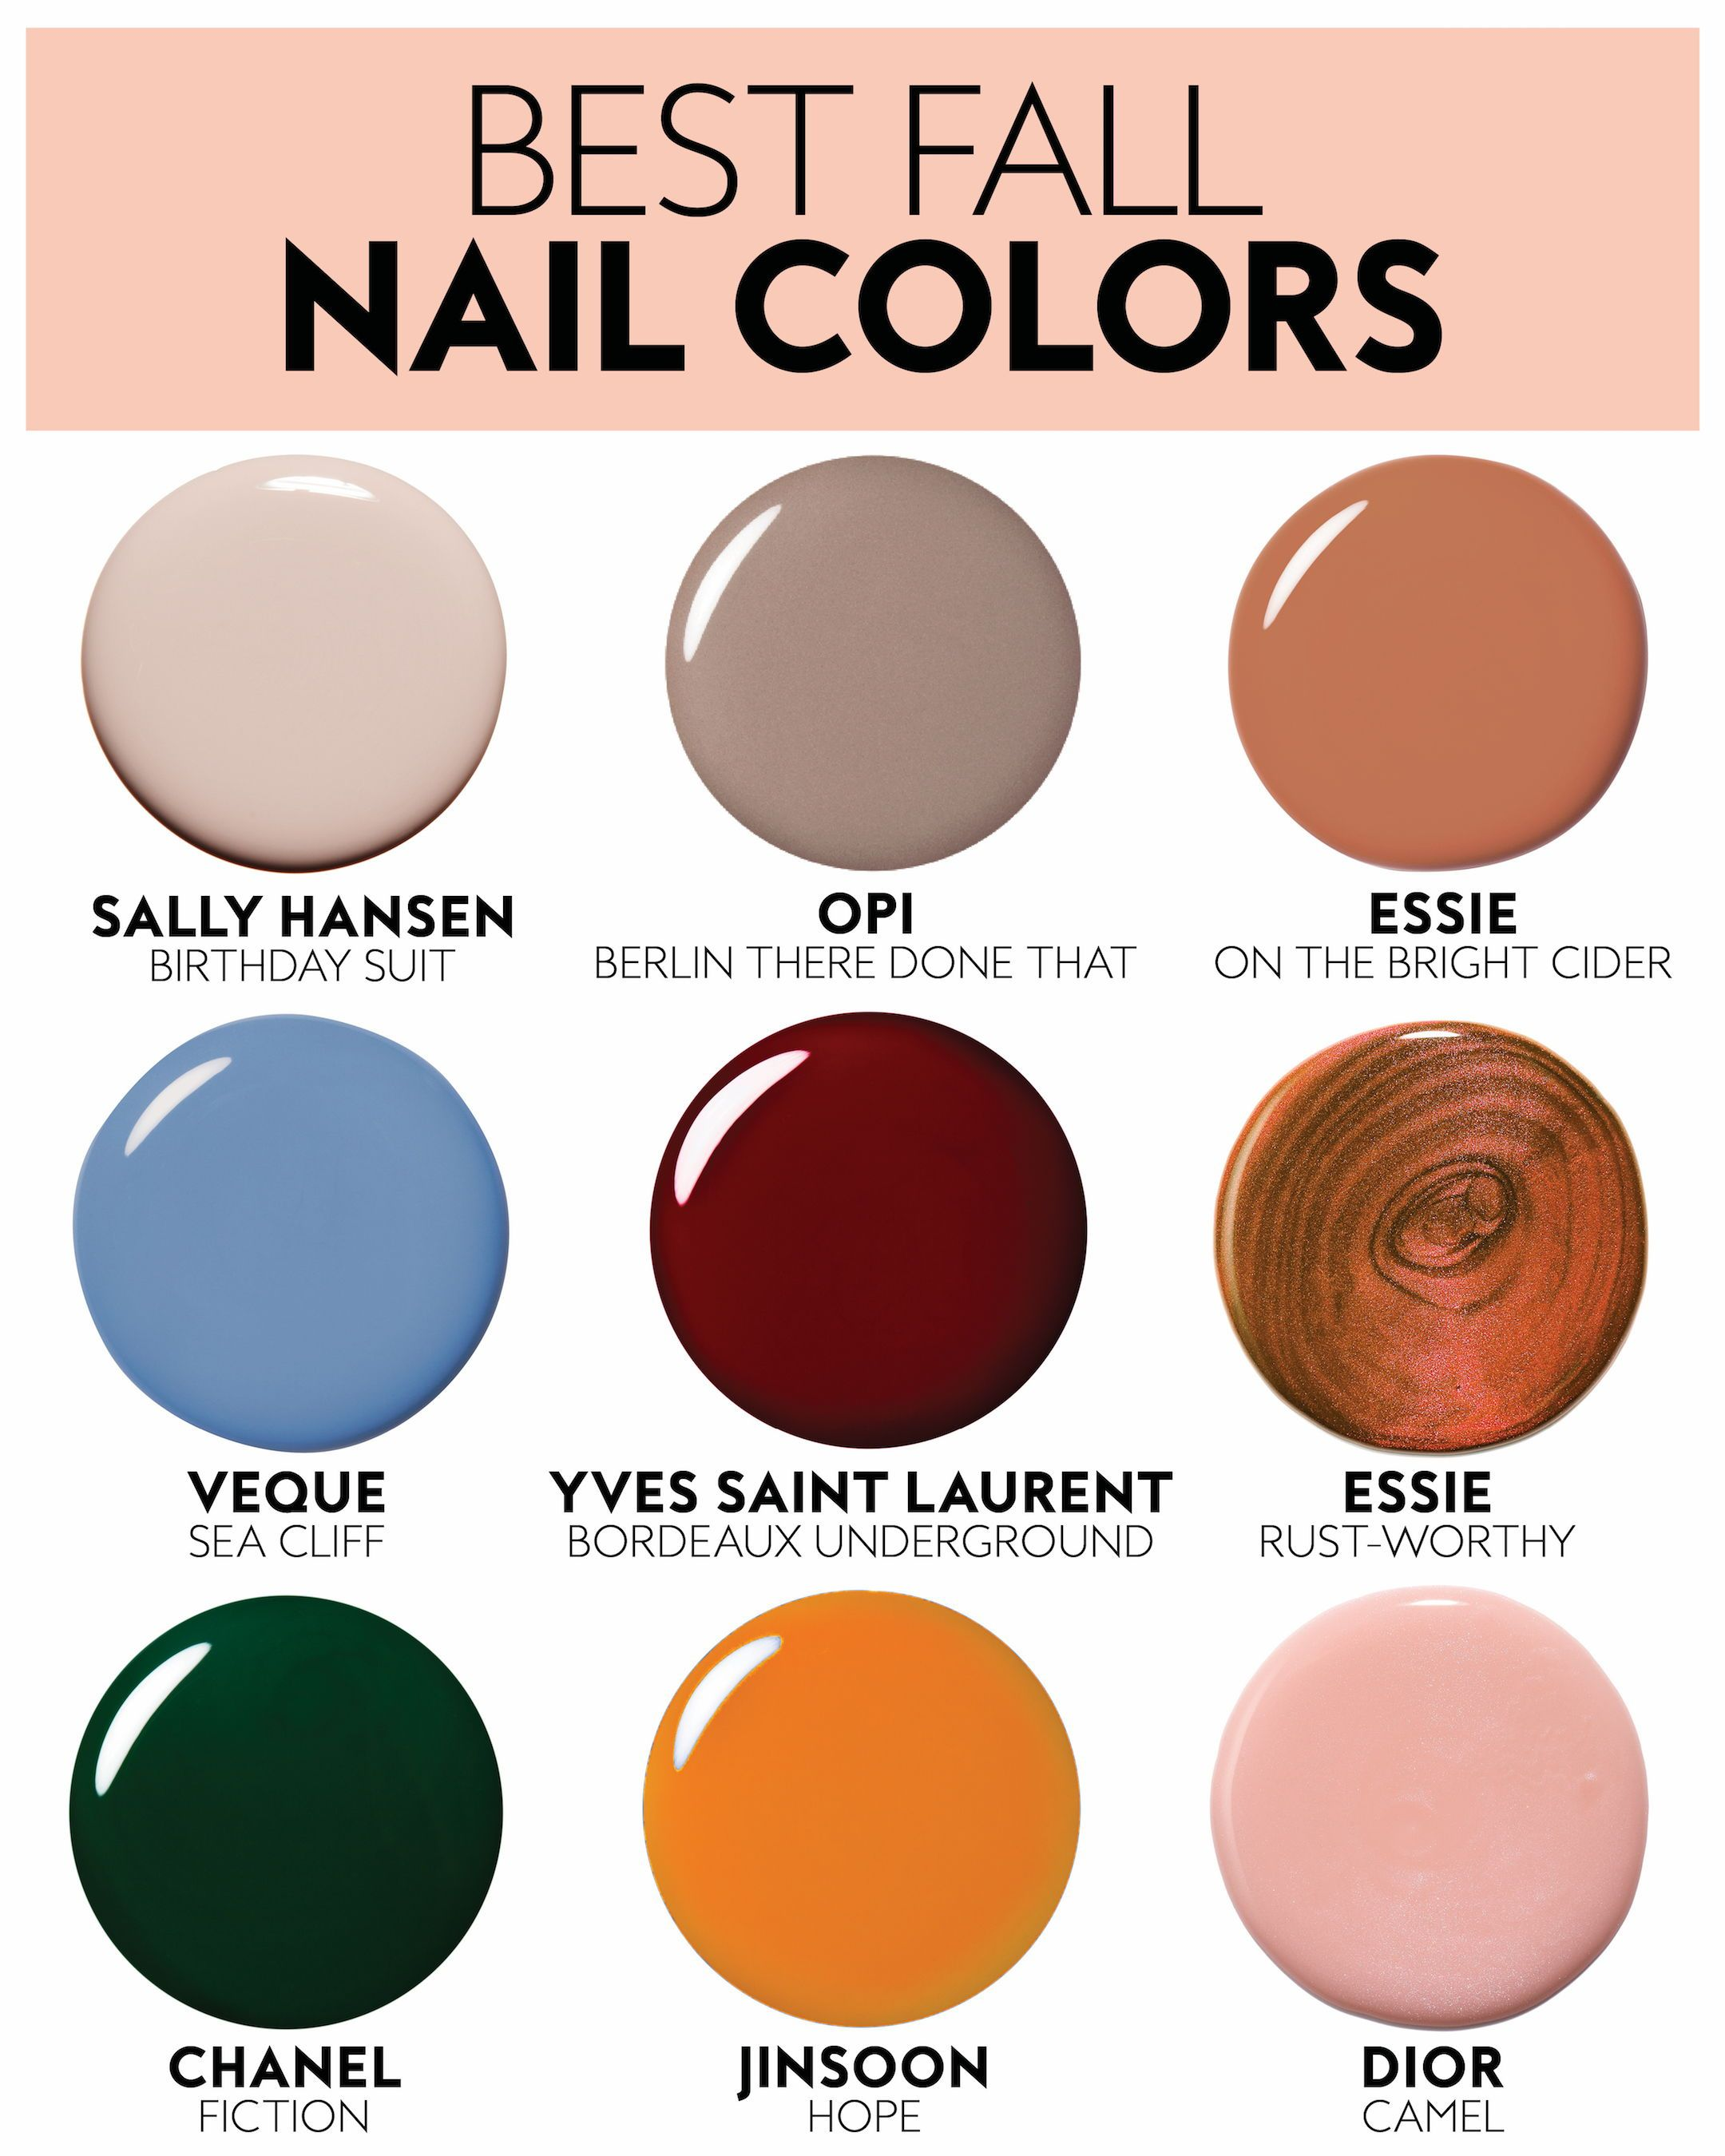 The Best Nail Polish Colors for Fall 2019